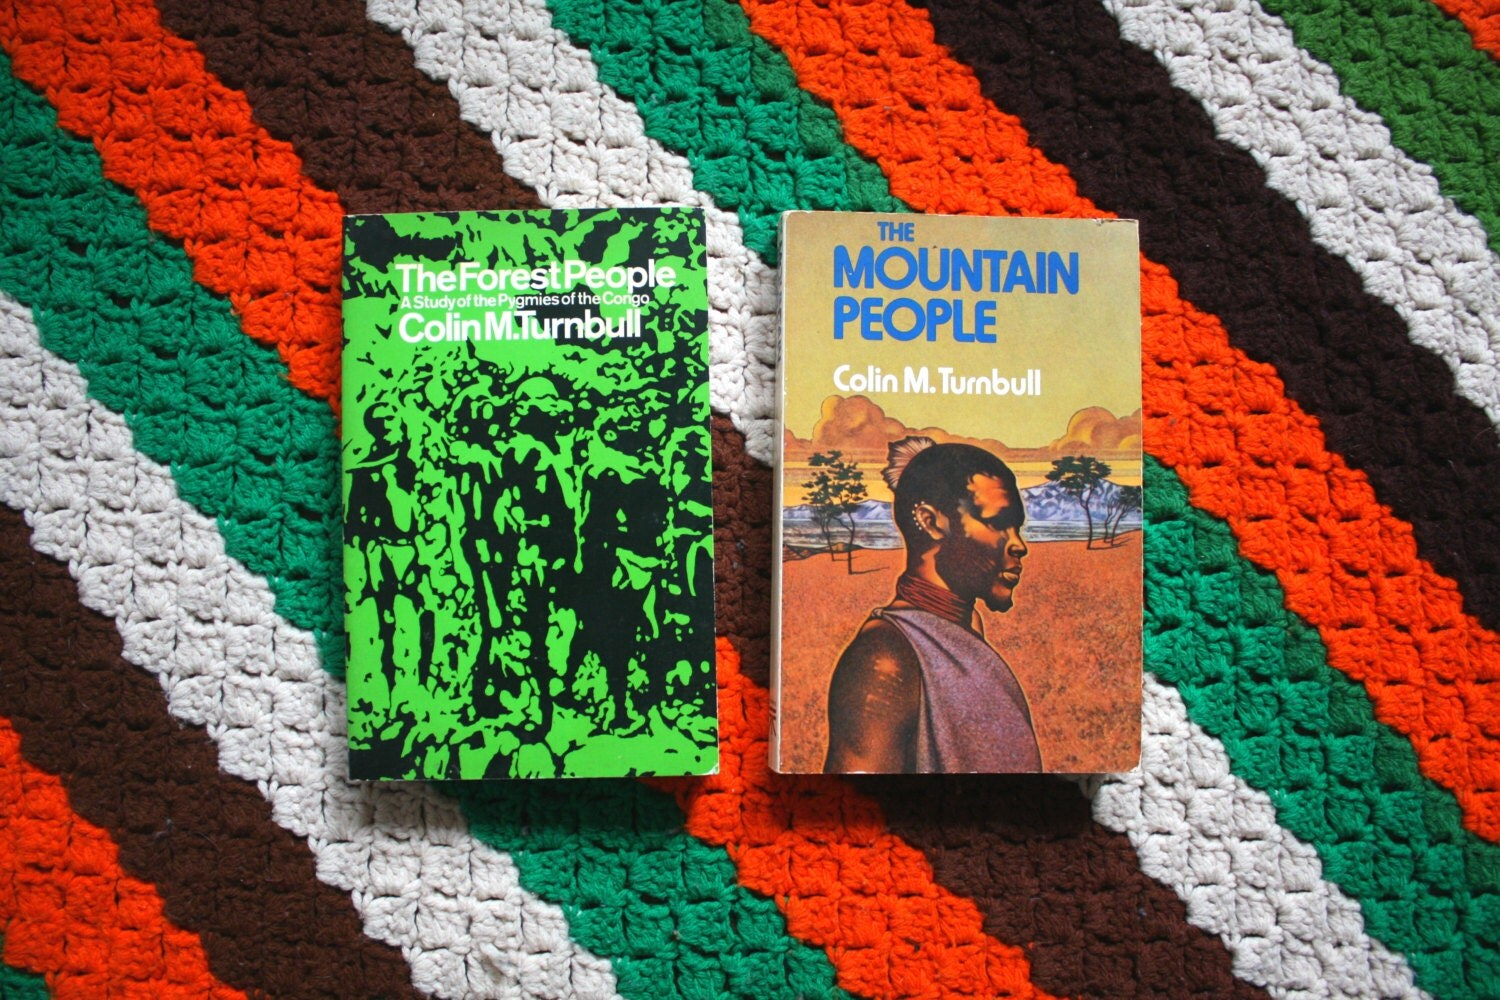 a book review on the mountain people by colin turnbull essay In colin m turnbull's book the forest people there were many examples of theoretical approaches that he describes that the pygmies use to maintain there social order.